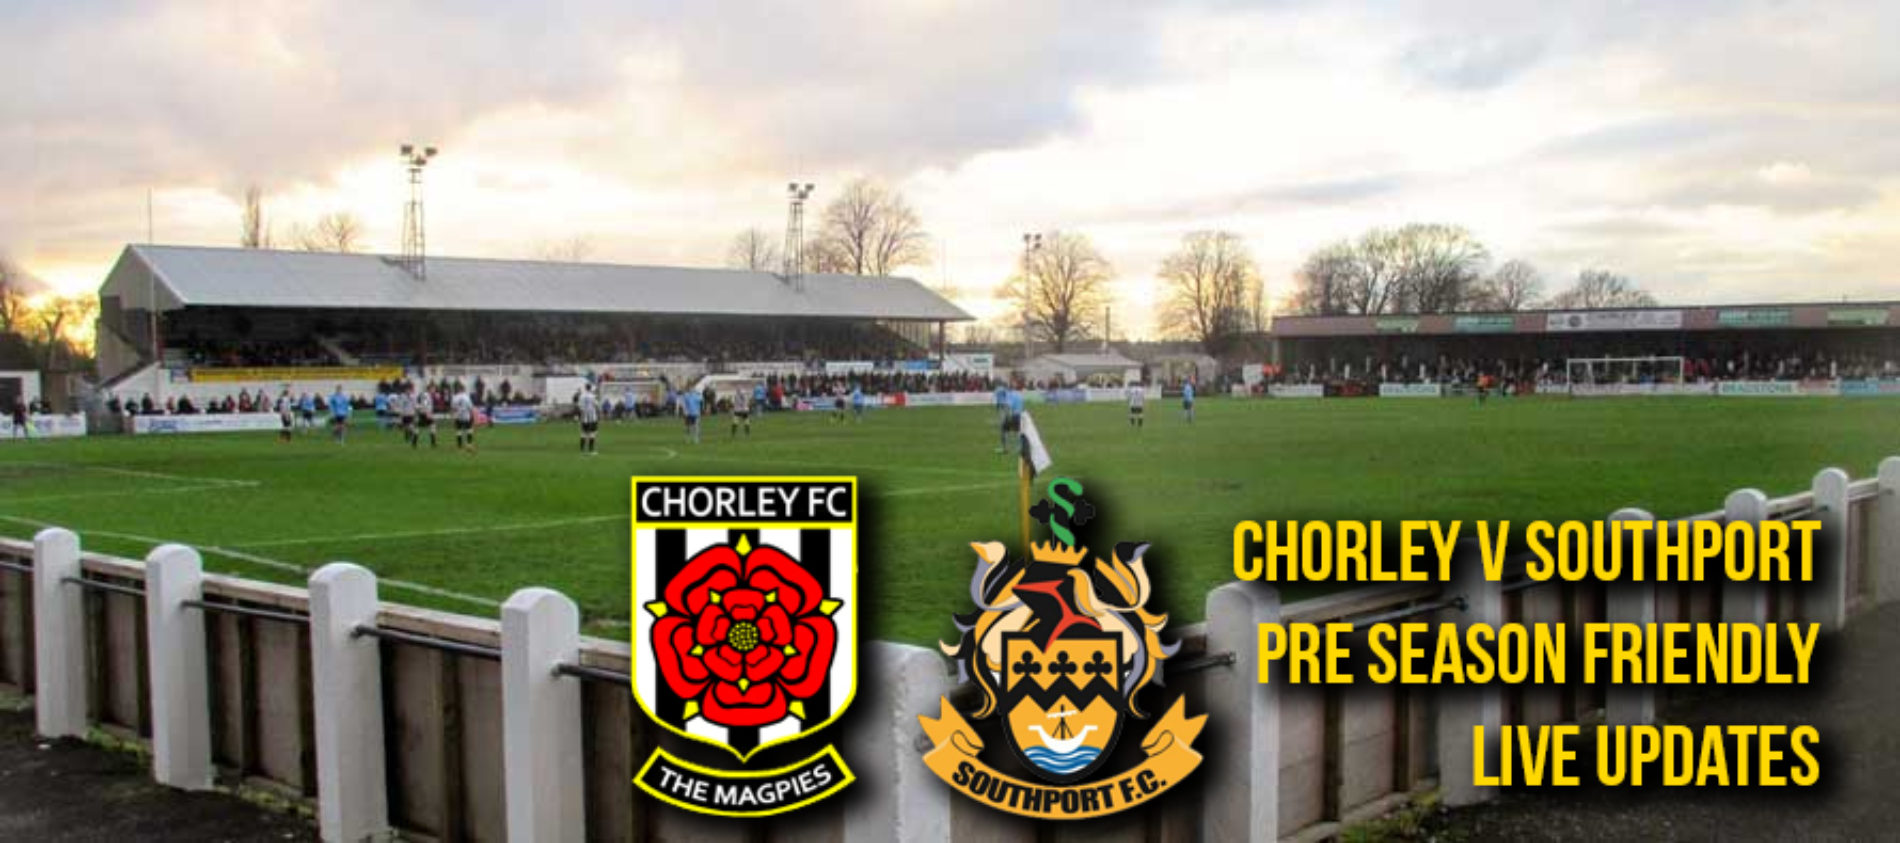 LIVE COVERAGE: Chorley v Southport